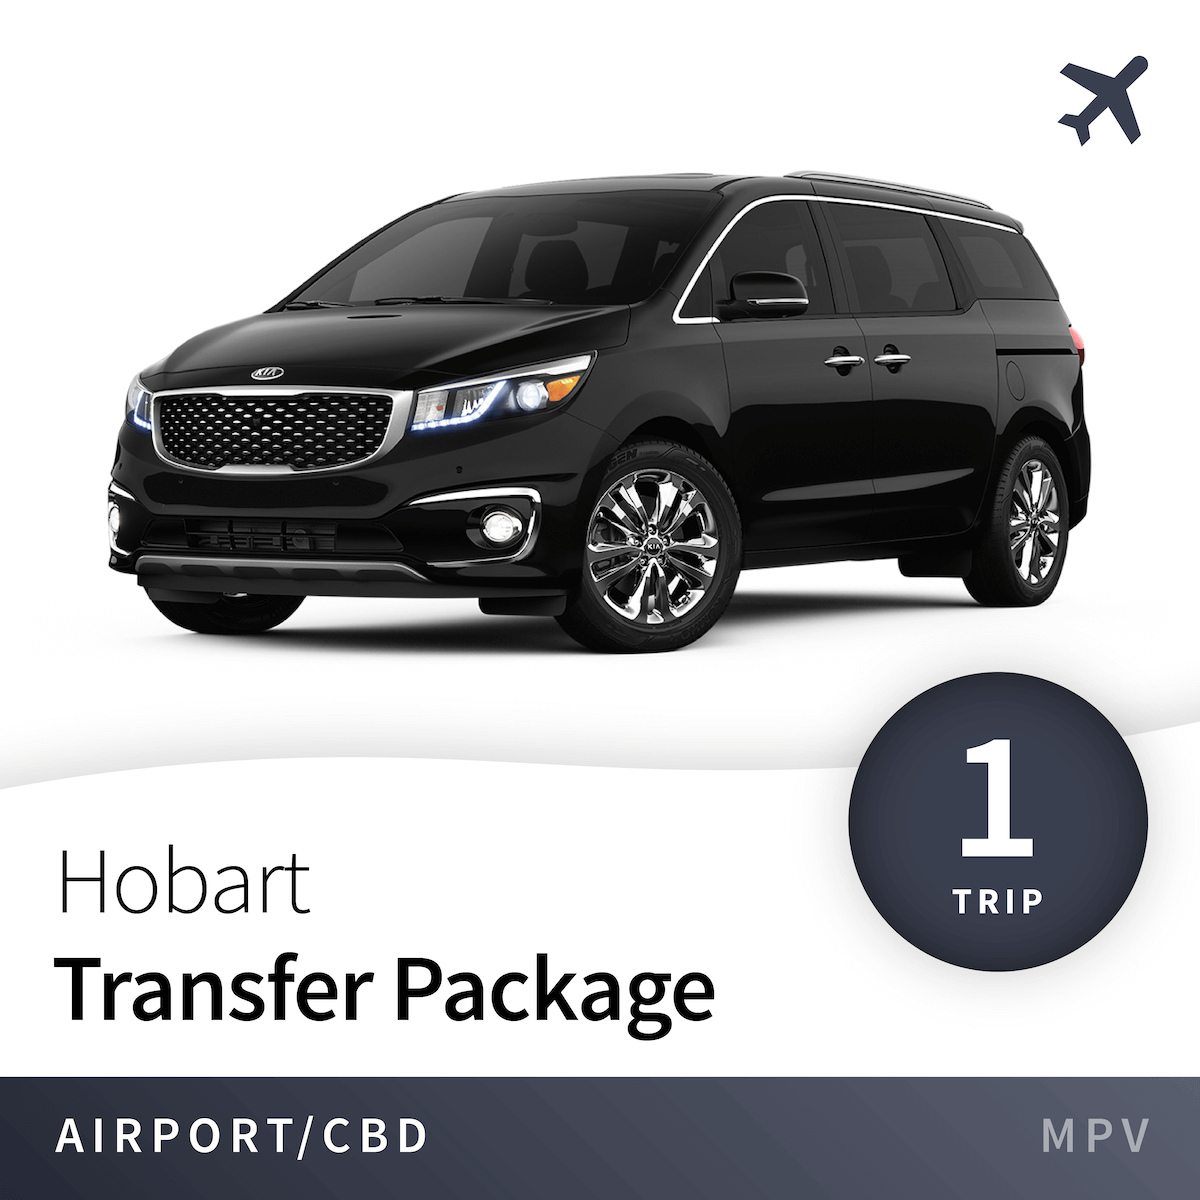 Hobart Airport Transfer Package - MPV (1 Trip) 23